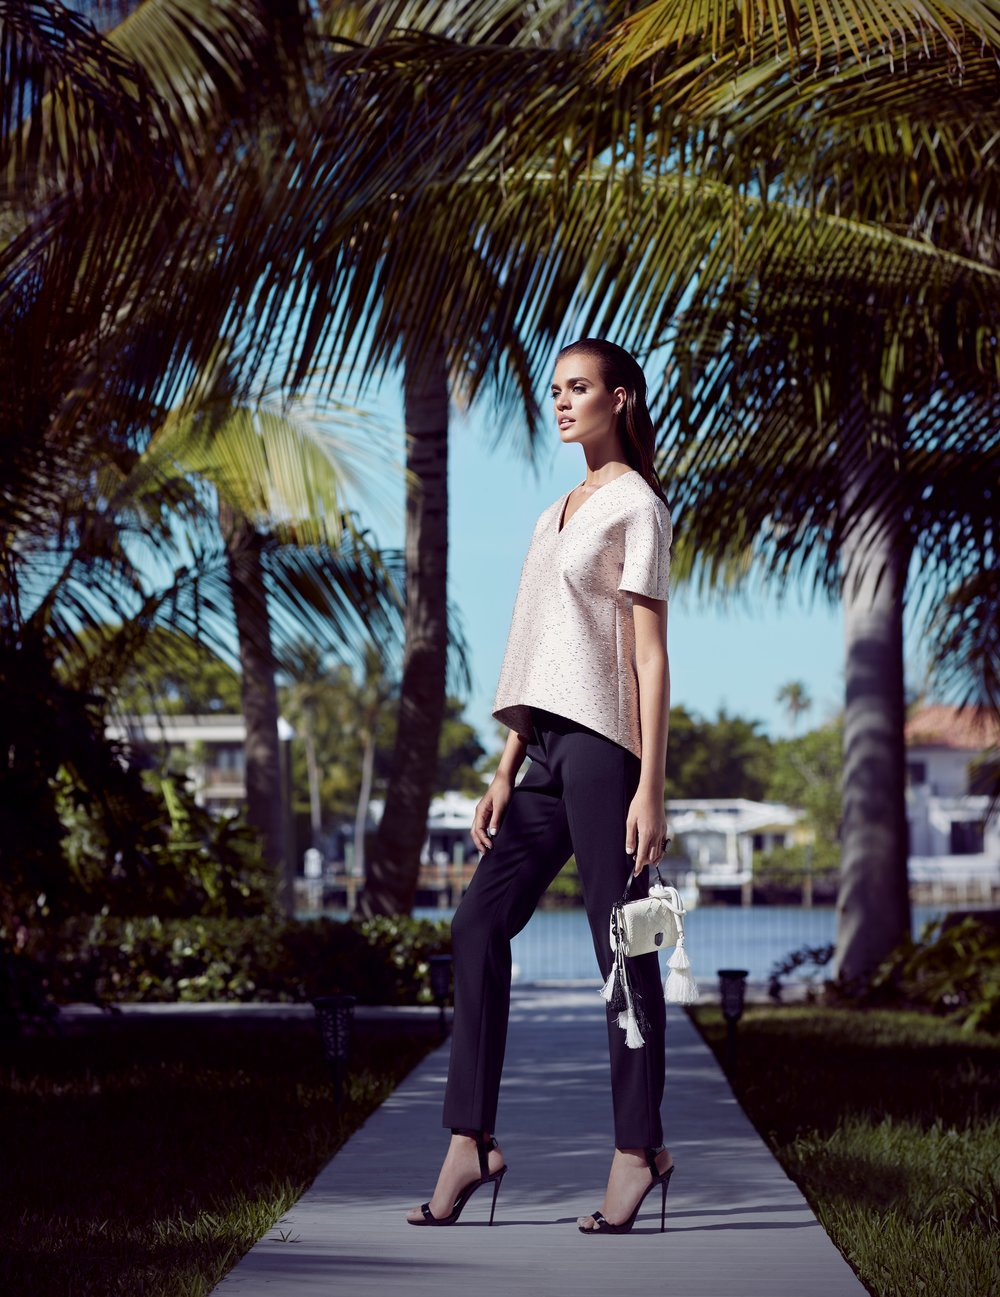 Brunette woman wearing off-white top with dark pants and high heels holding a small white purse standing on the sidewalk in a beachfront community - Mark DeLong: Fashion Gallery